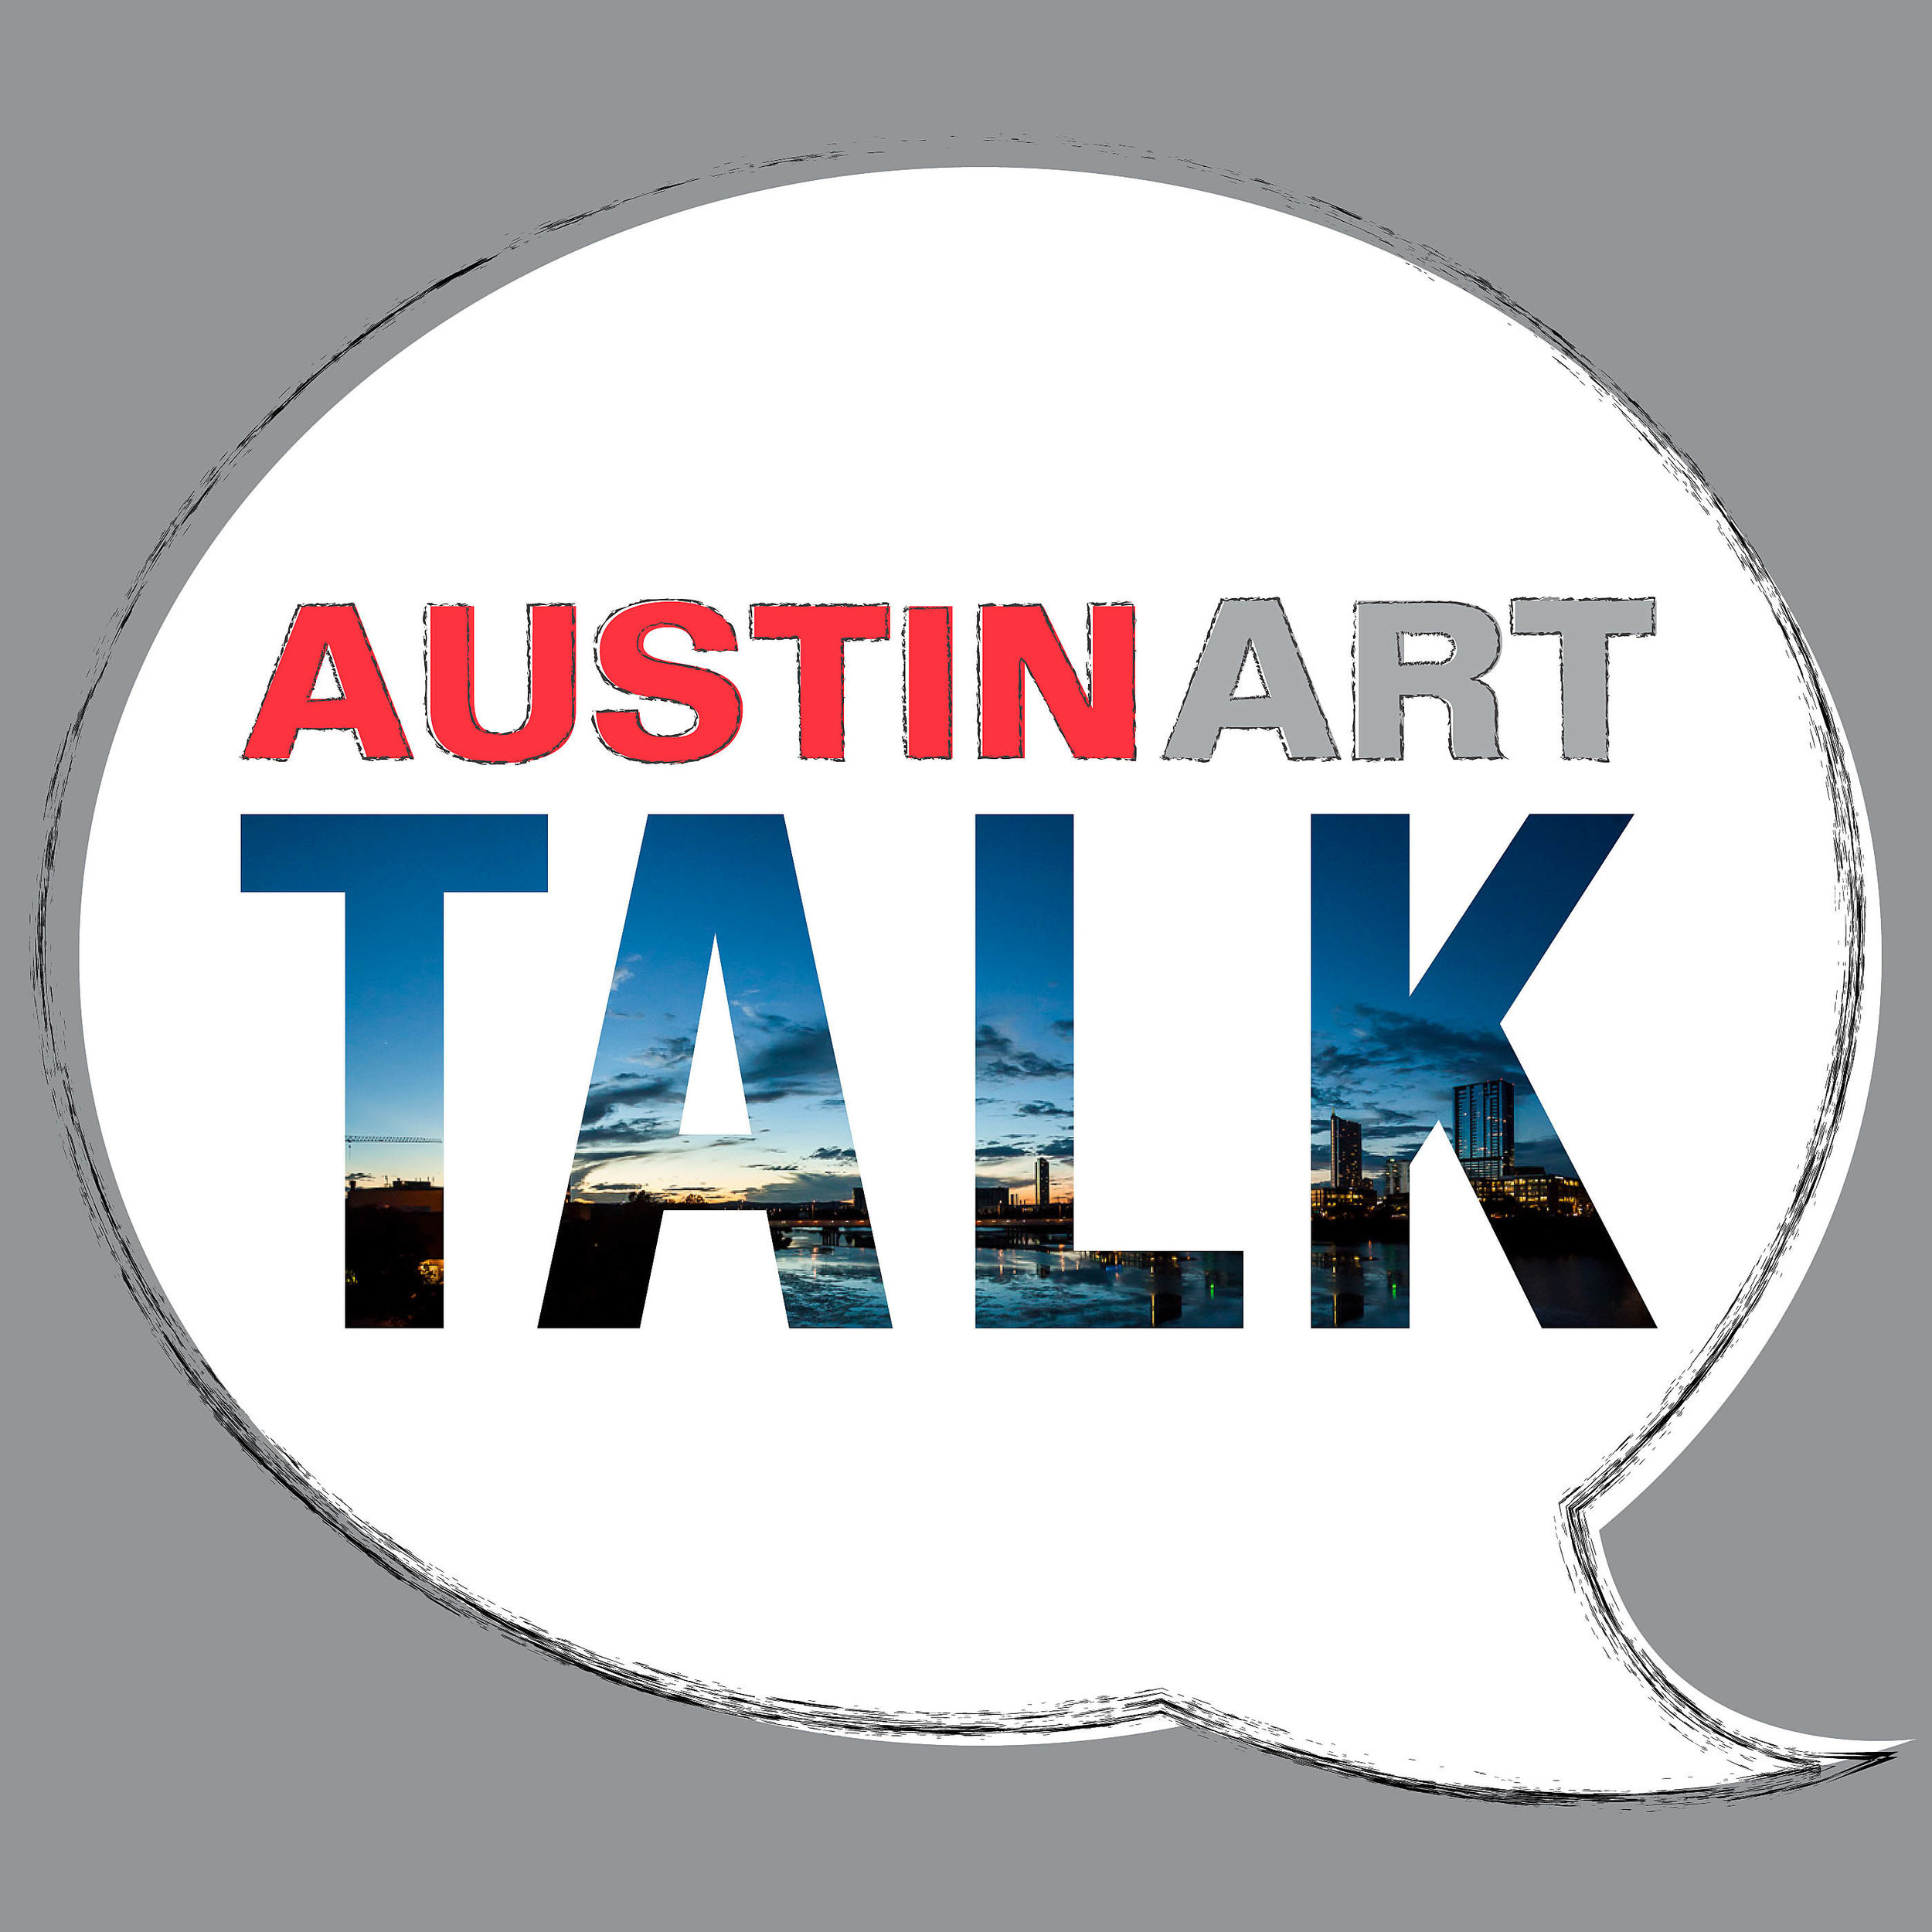 Austin Art Talk with Valerie Fowler - Learn more about Valerie and her artwork with this podcast interview from 2018 with Austin Art Talk's Scott David Gordon.